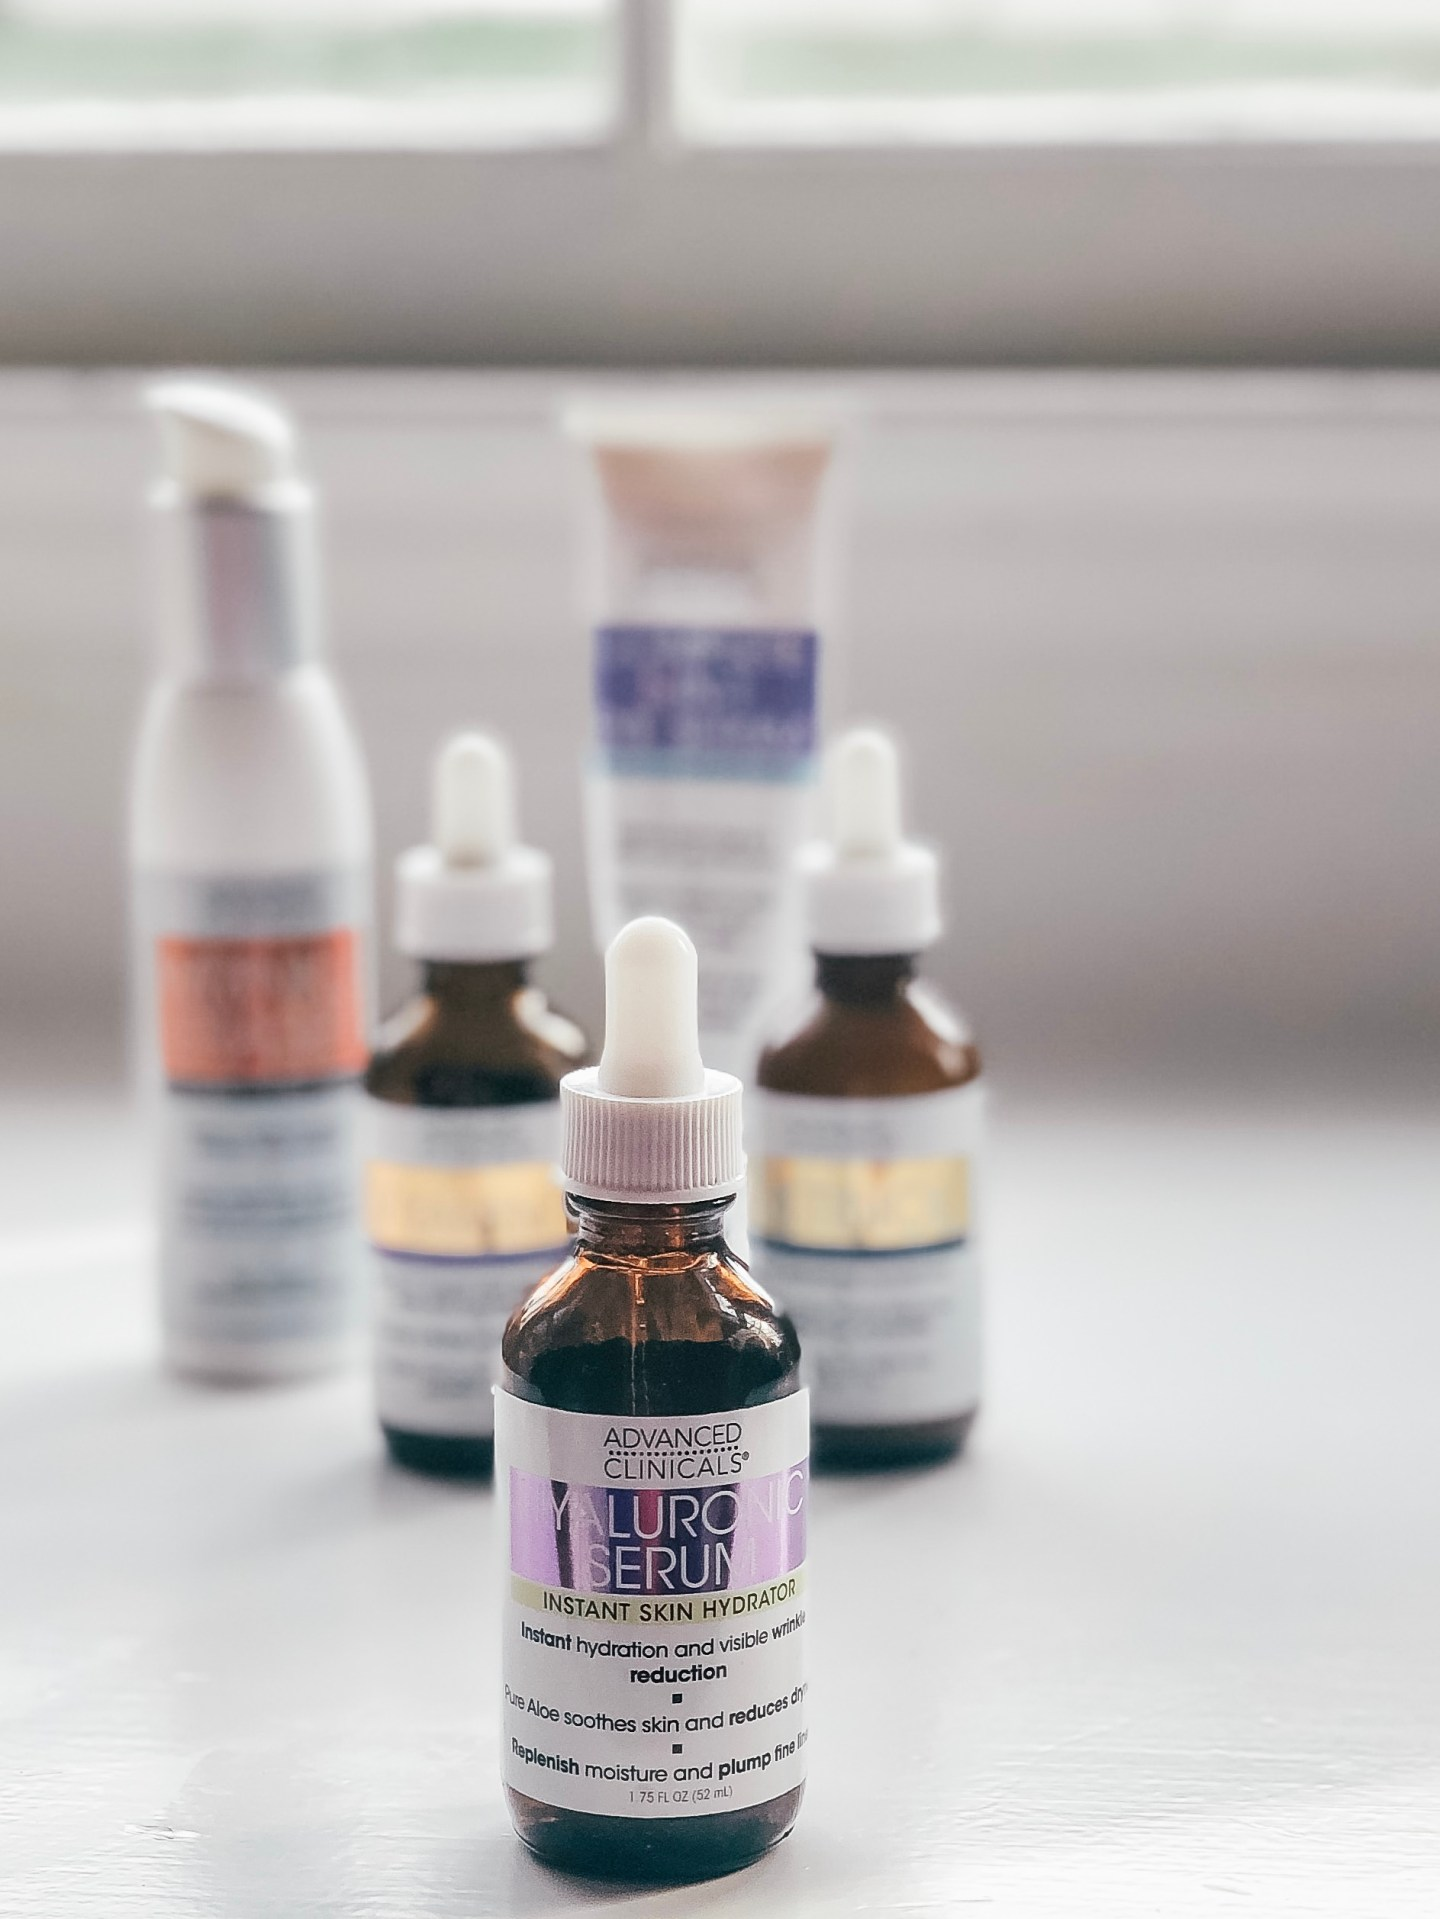 Advanced Clinicals Hyaluronic Serum